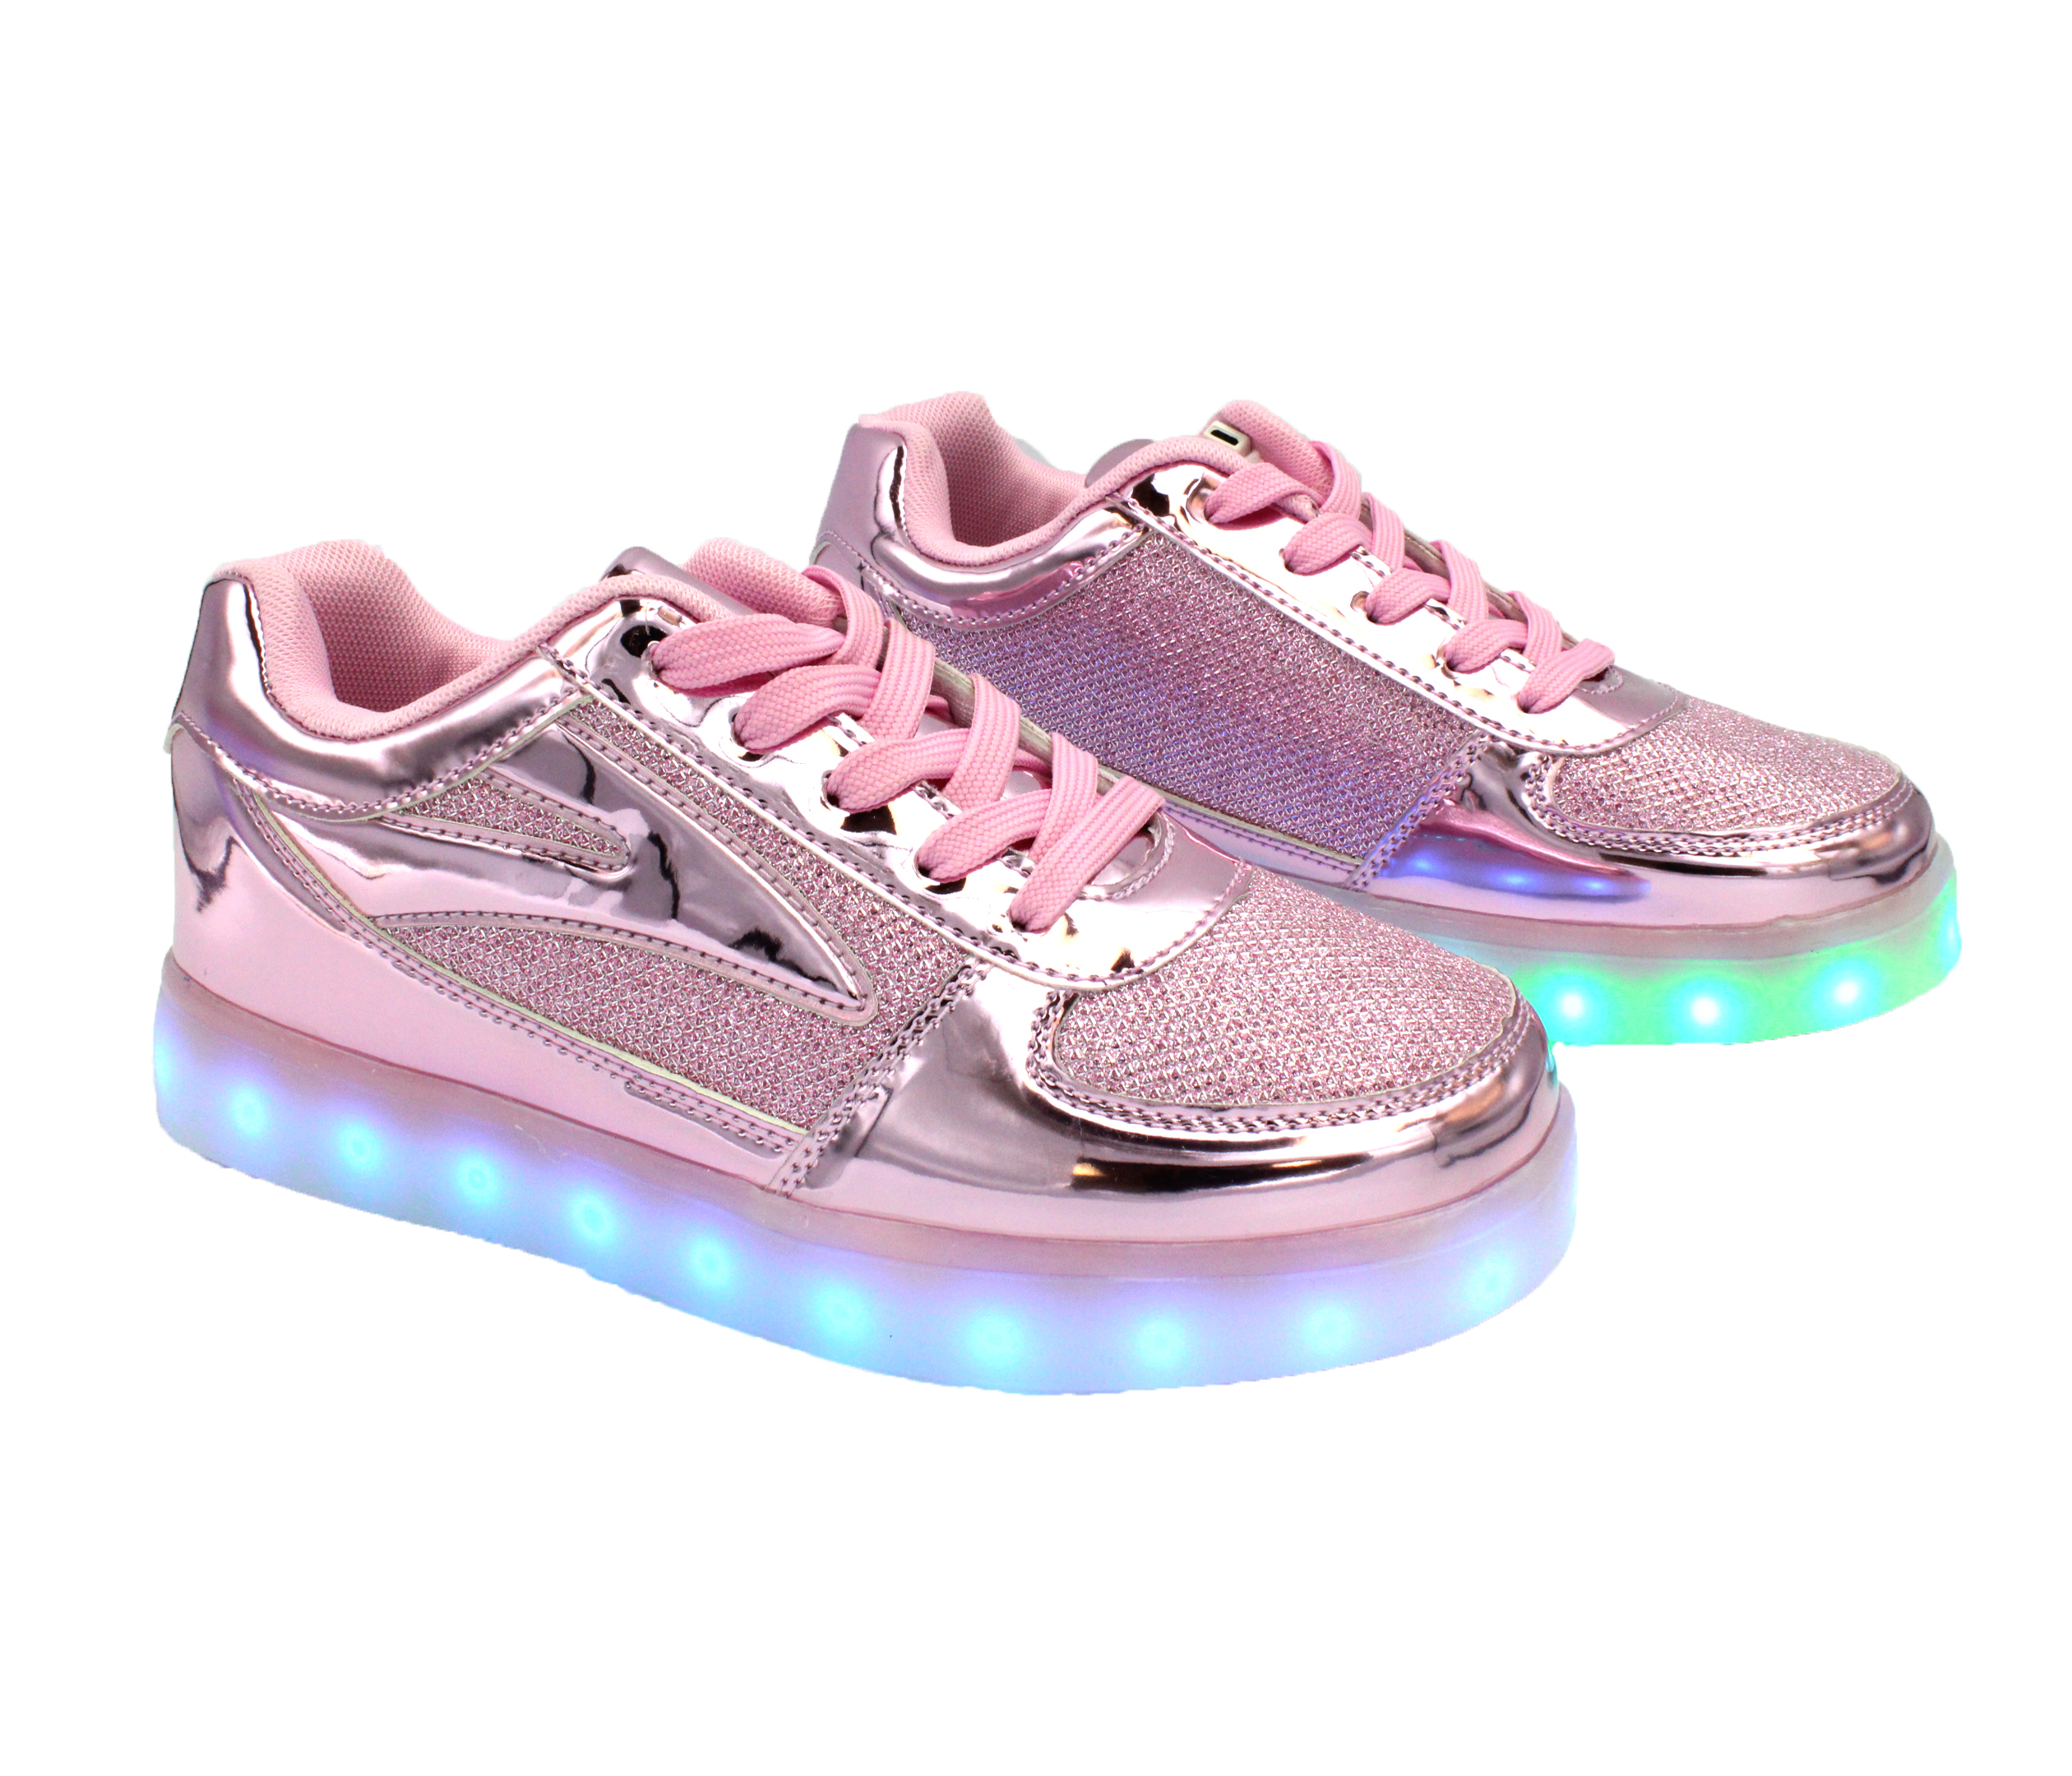 Galaxy LED Shoes Light Up USB Charging Low Top Women s Sneakers (Pink  Glossy Fusion) db557447a